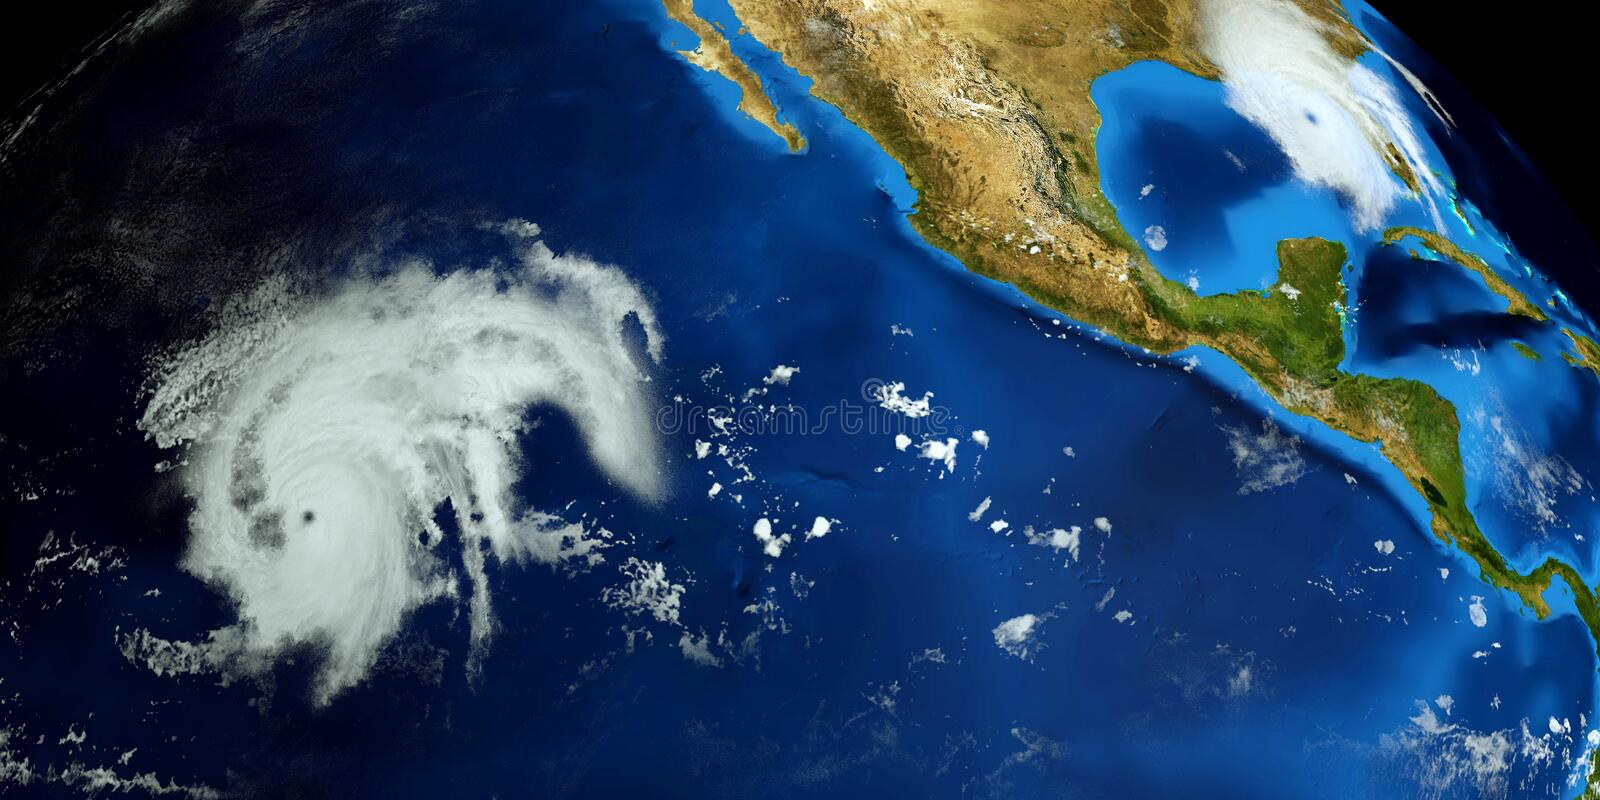 Extremely detailed and realistic high resolution 3D illustration of a Hurricane. Shot from Space. Elements of this image are furni. Extremely detailed and royalty free stock photos